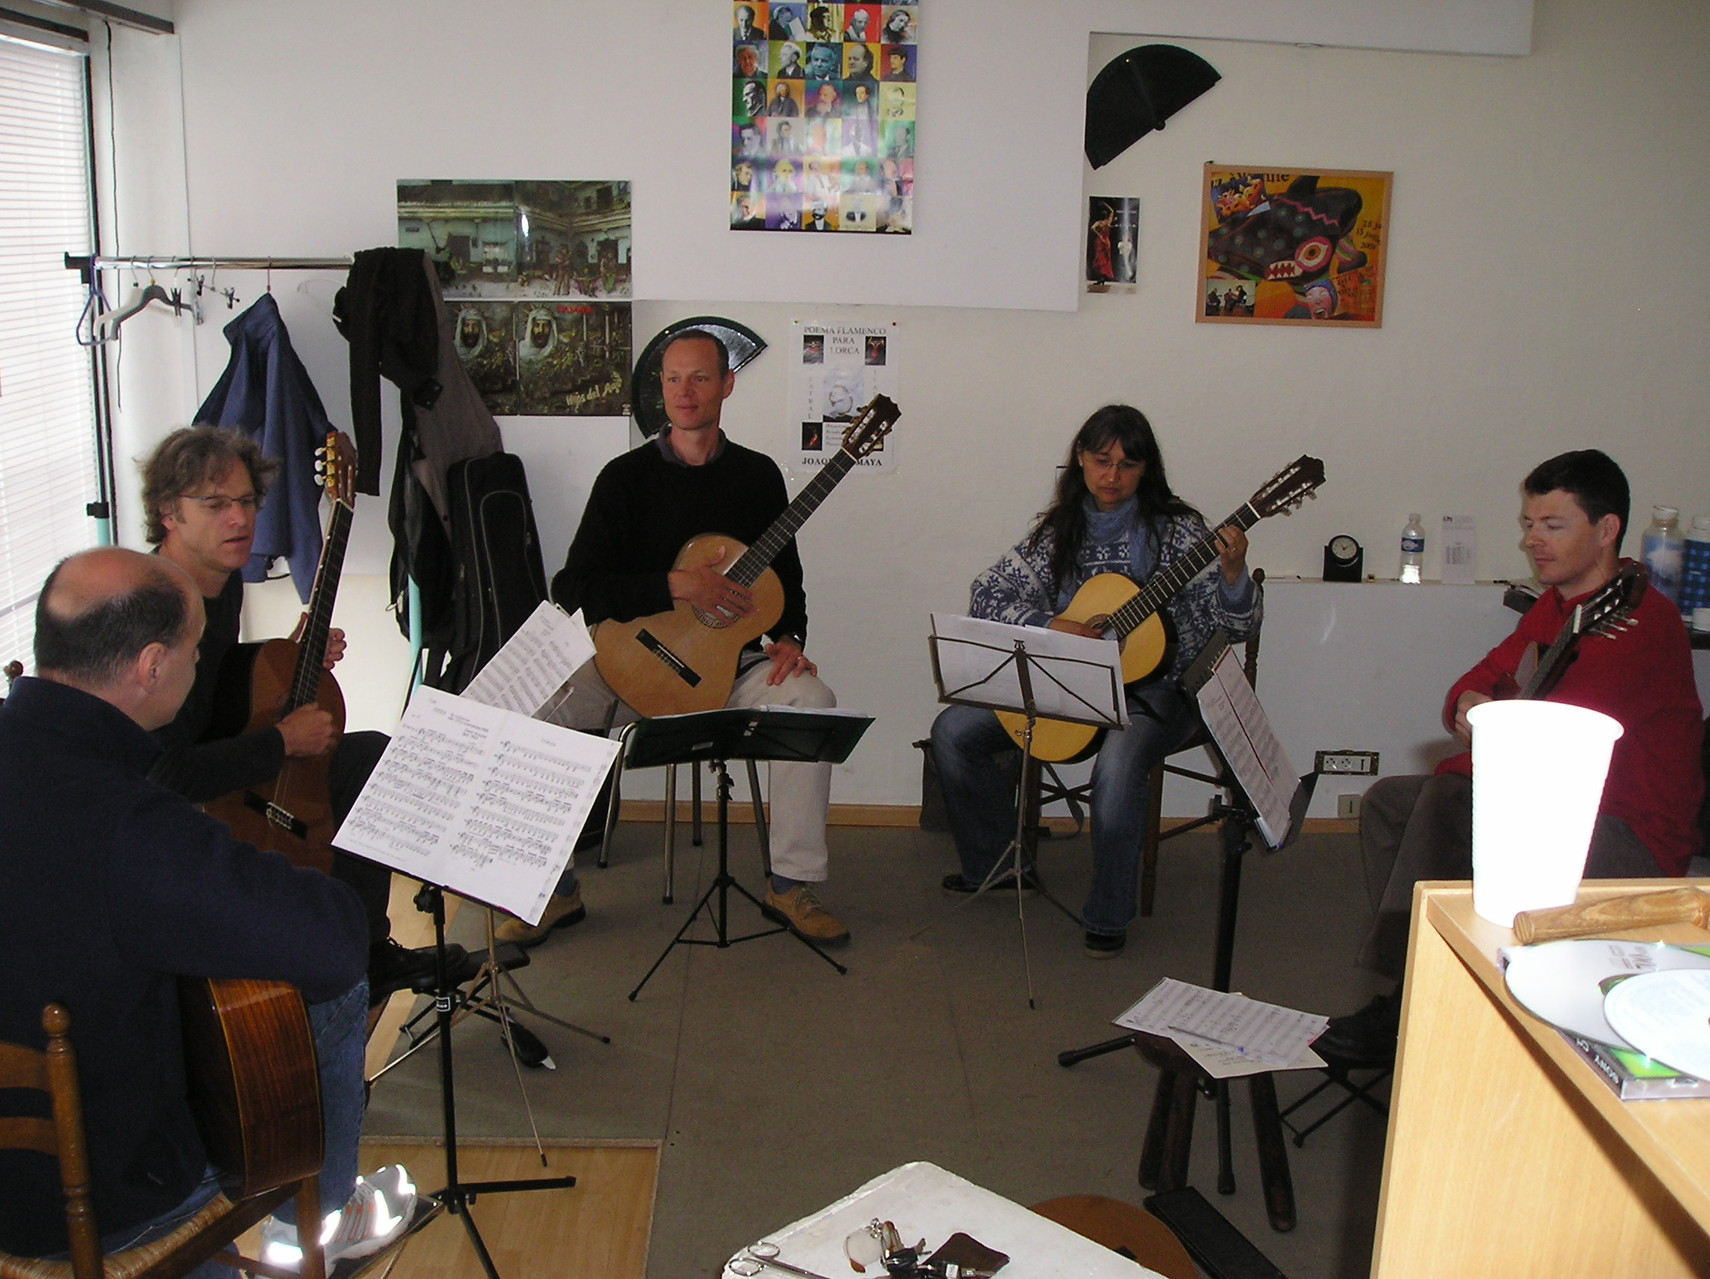 ensemble de guitares adultes, Grenoble 2009